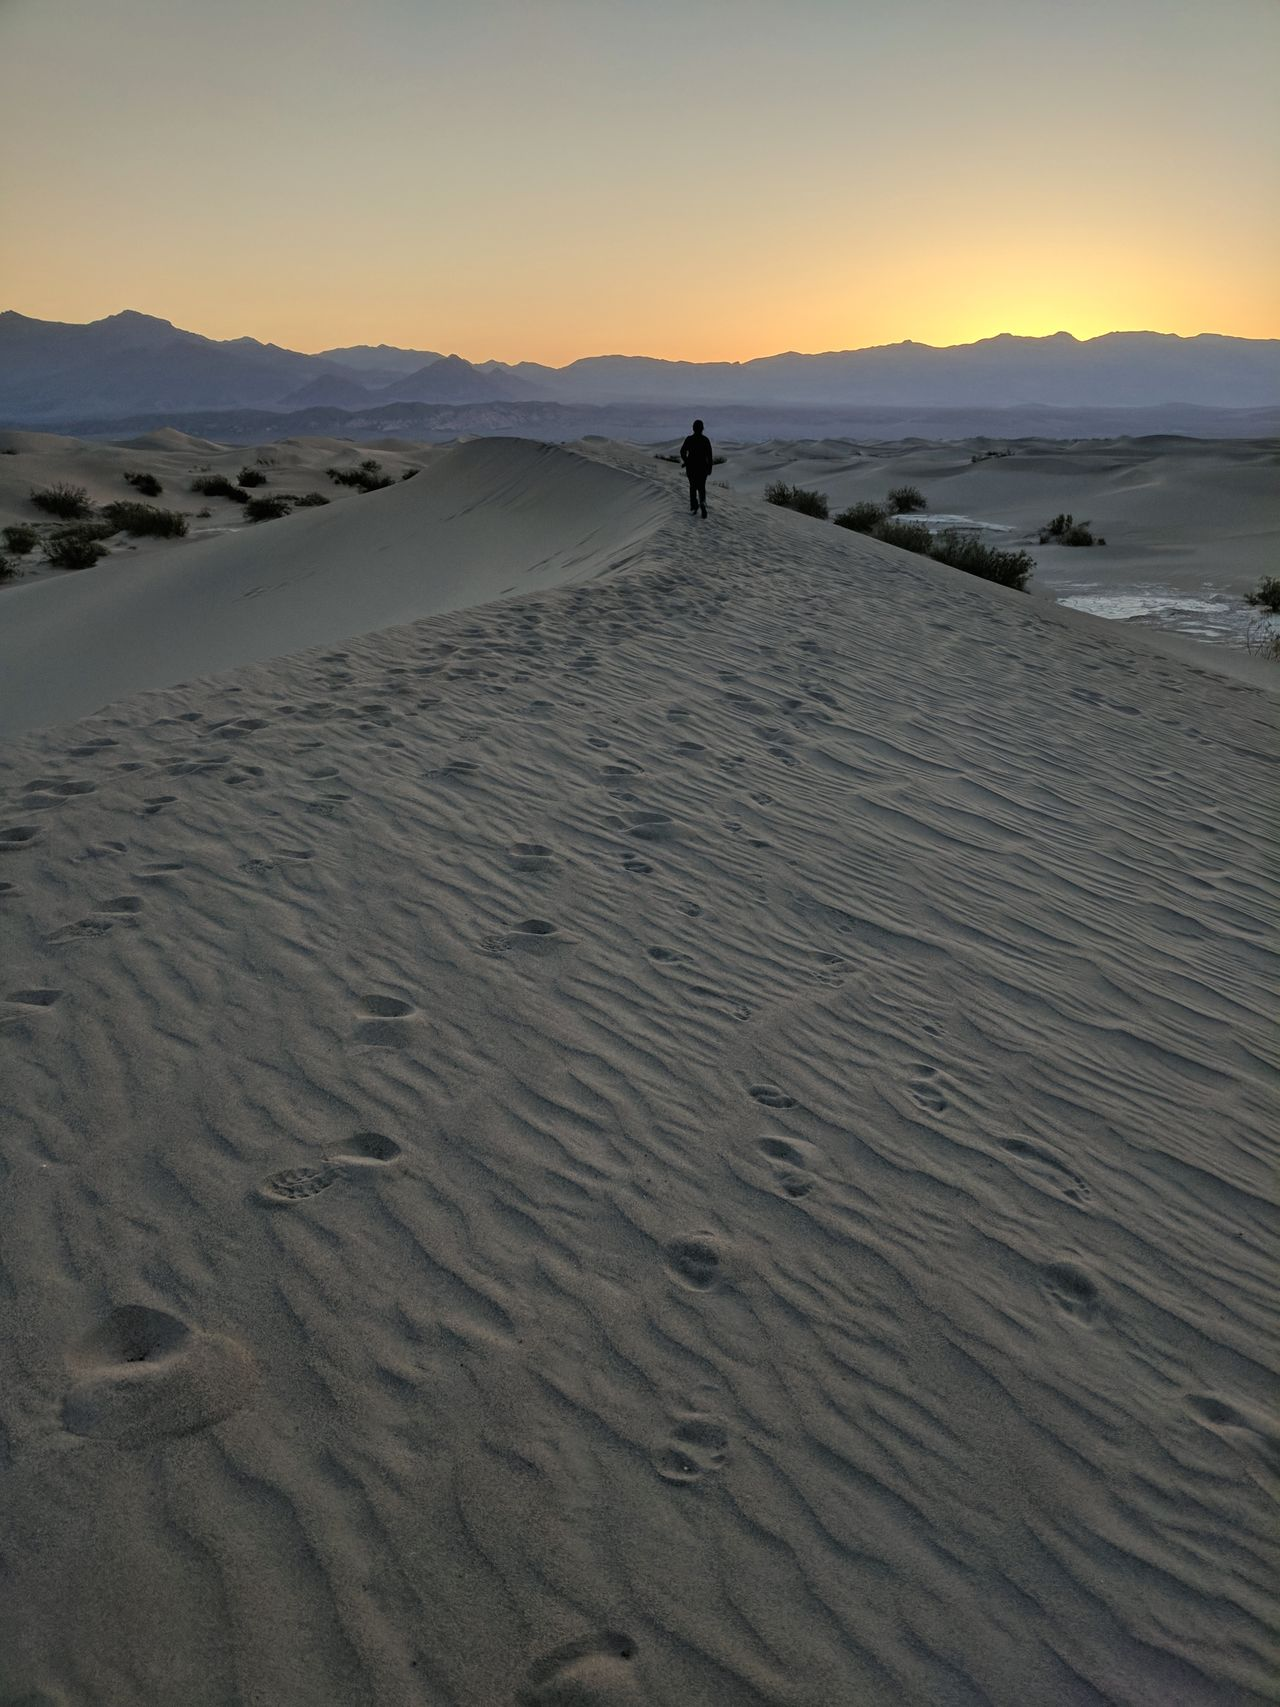 Death Valley National Park California One Person Footprints Hiking Active Lifestyles Beauty In Nature Desert Sky Sand Dune People Outdoors Landscape Silhouette Sand Horizon Arid Climate Sunrise Dawn Day Extreme Terrain Sunset Scenics Mountain Range Vast